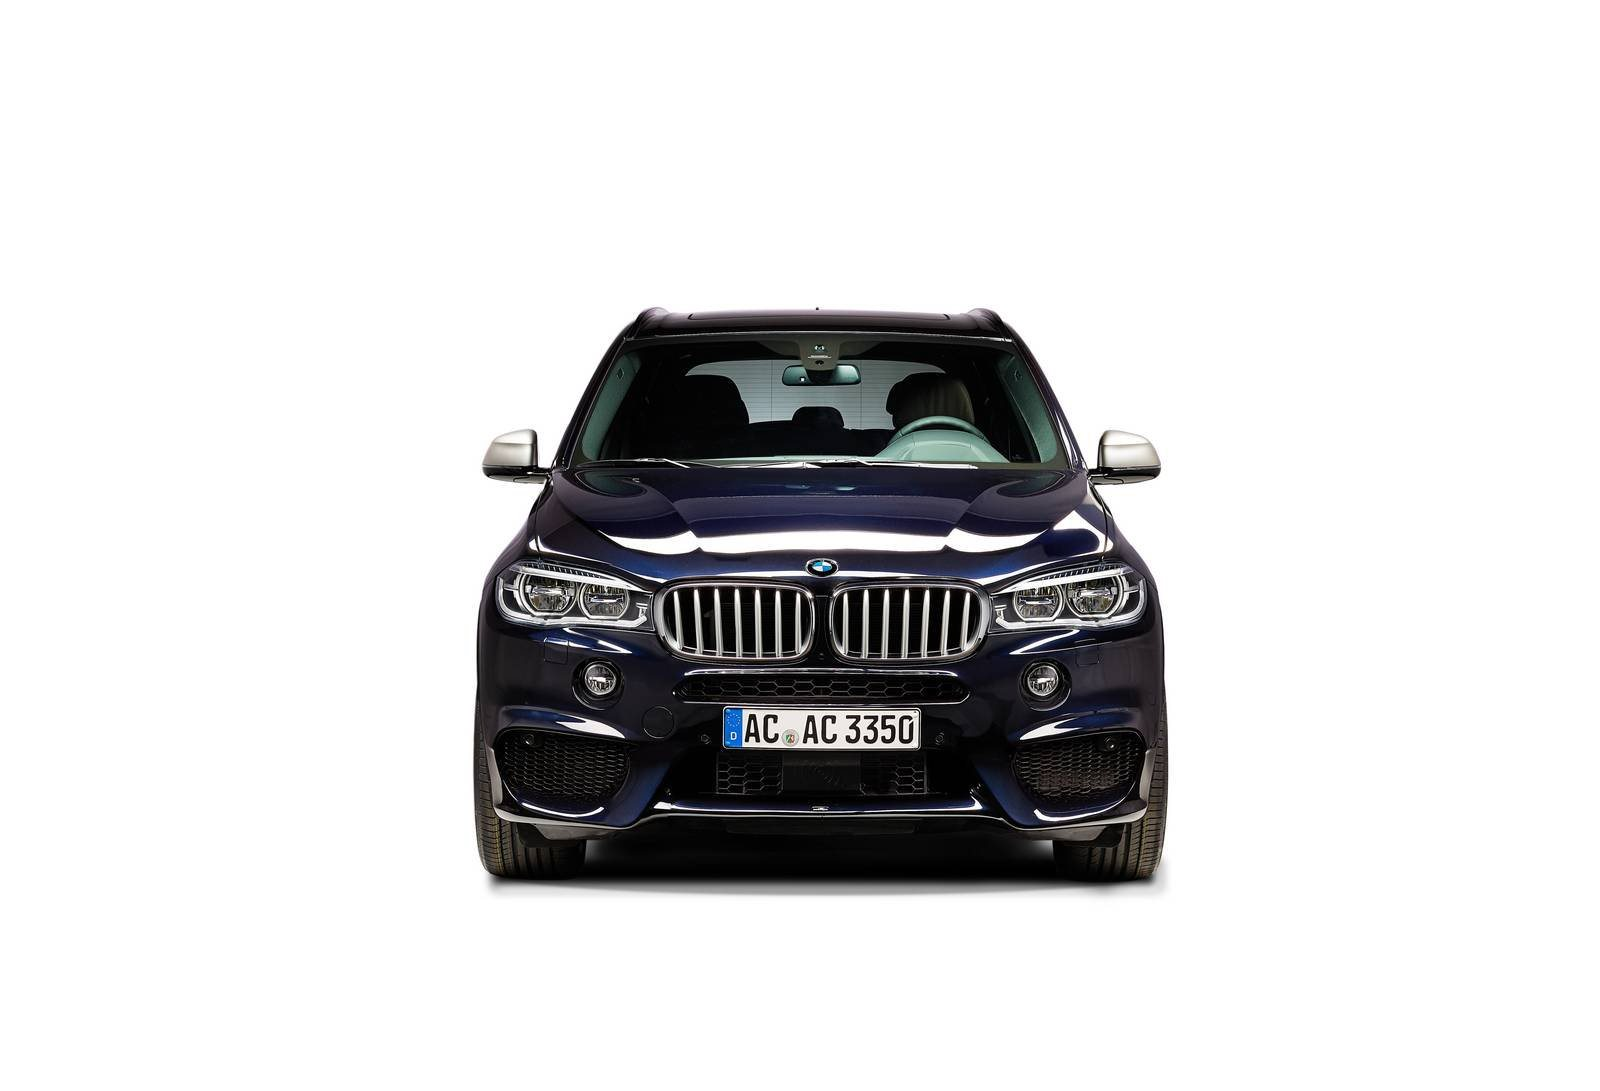 http://www.autoblog.gr/wp-content/gallery/bmw-x5-m50d-by-ac-schnitzer/bmw-x5-m50d-by-ac-schnitzer-3.jpg